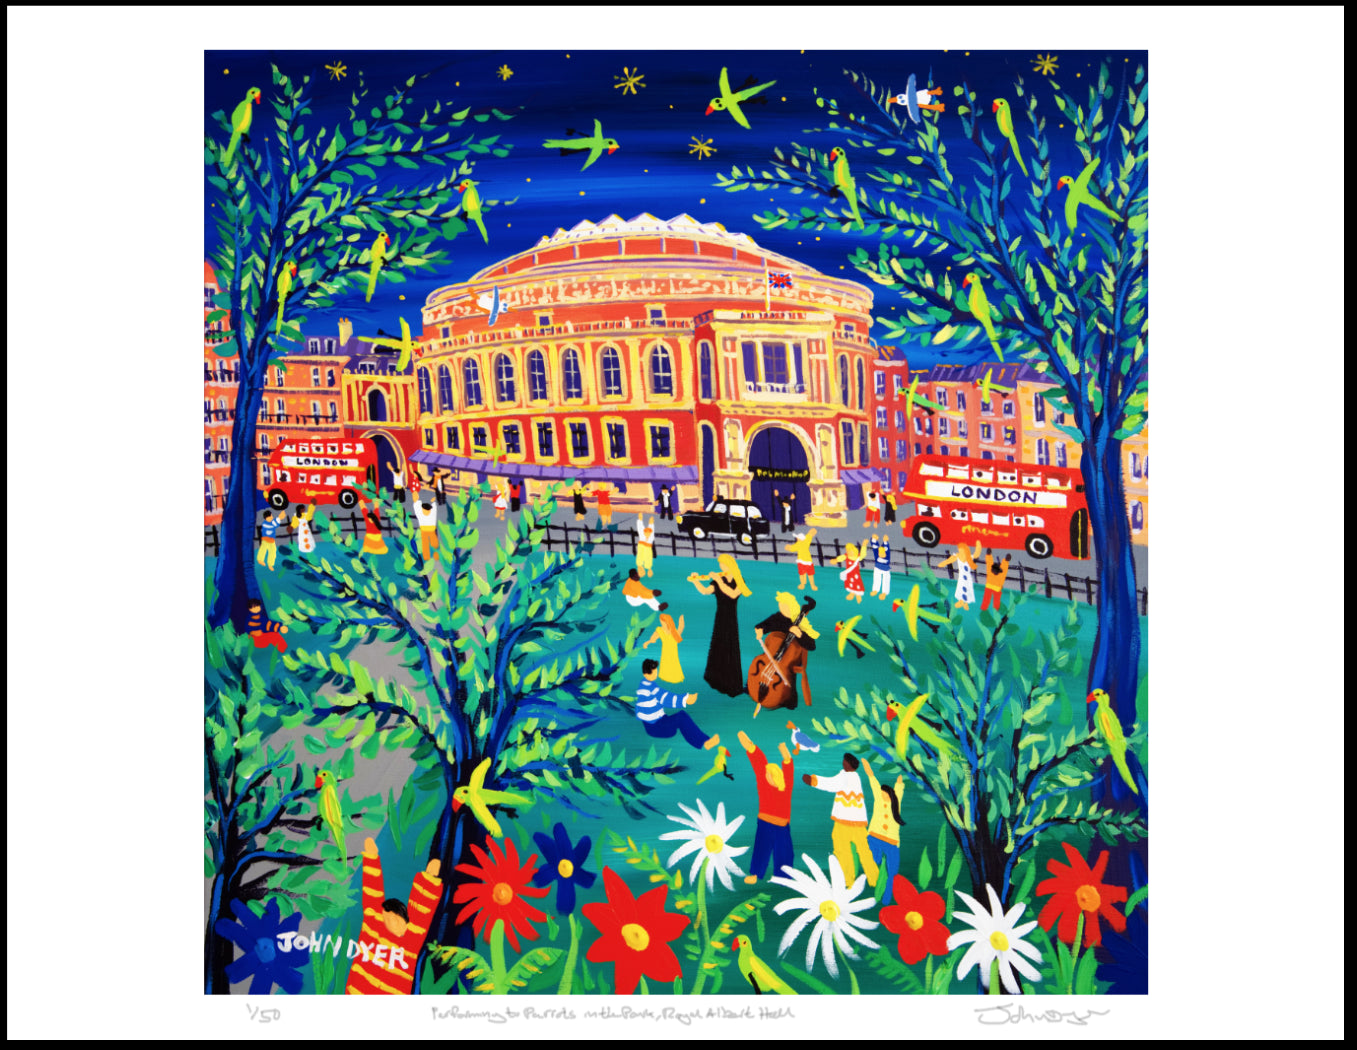 The Royal Albert Hall in London. Painted by British artist John Dyer. A flautist (Martha-Lilly Dyer) and cellist (Wilamena Dyer) play in Hyde park with stars and parrots overhead. Red London busses and a black cab drive past